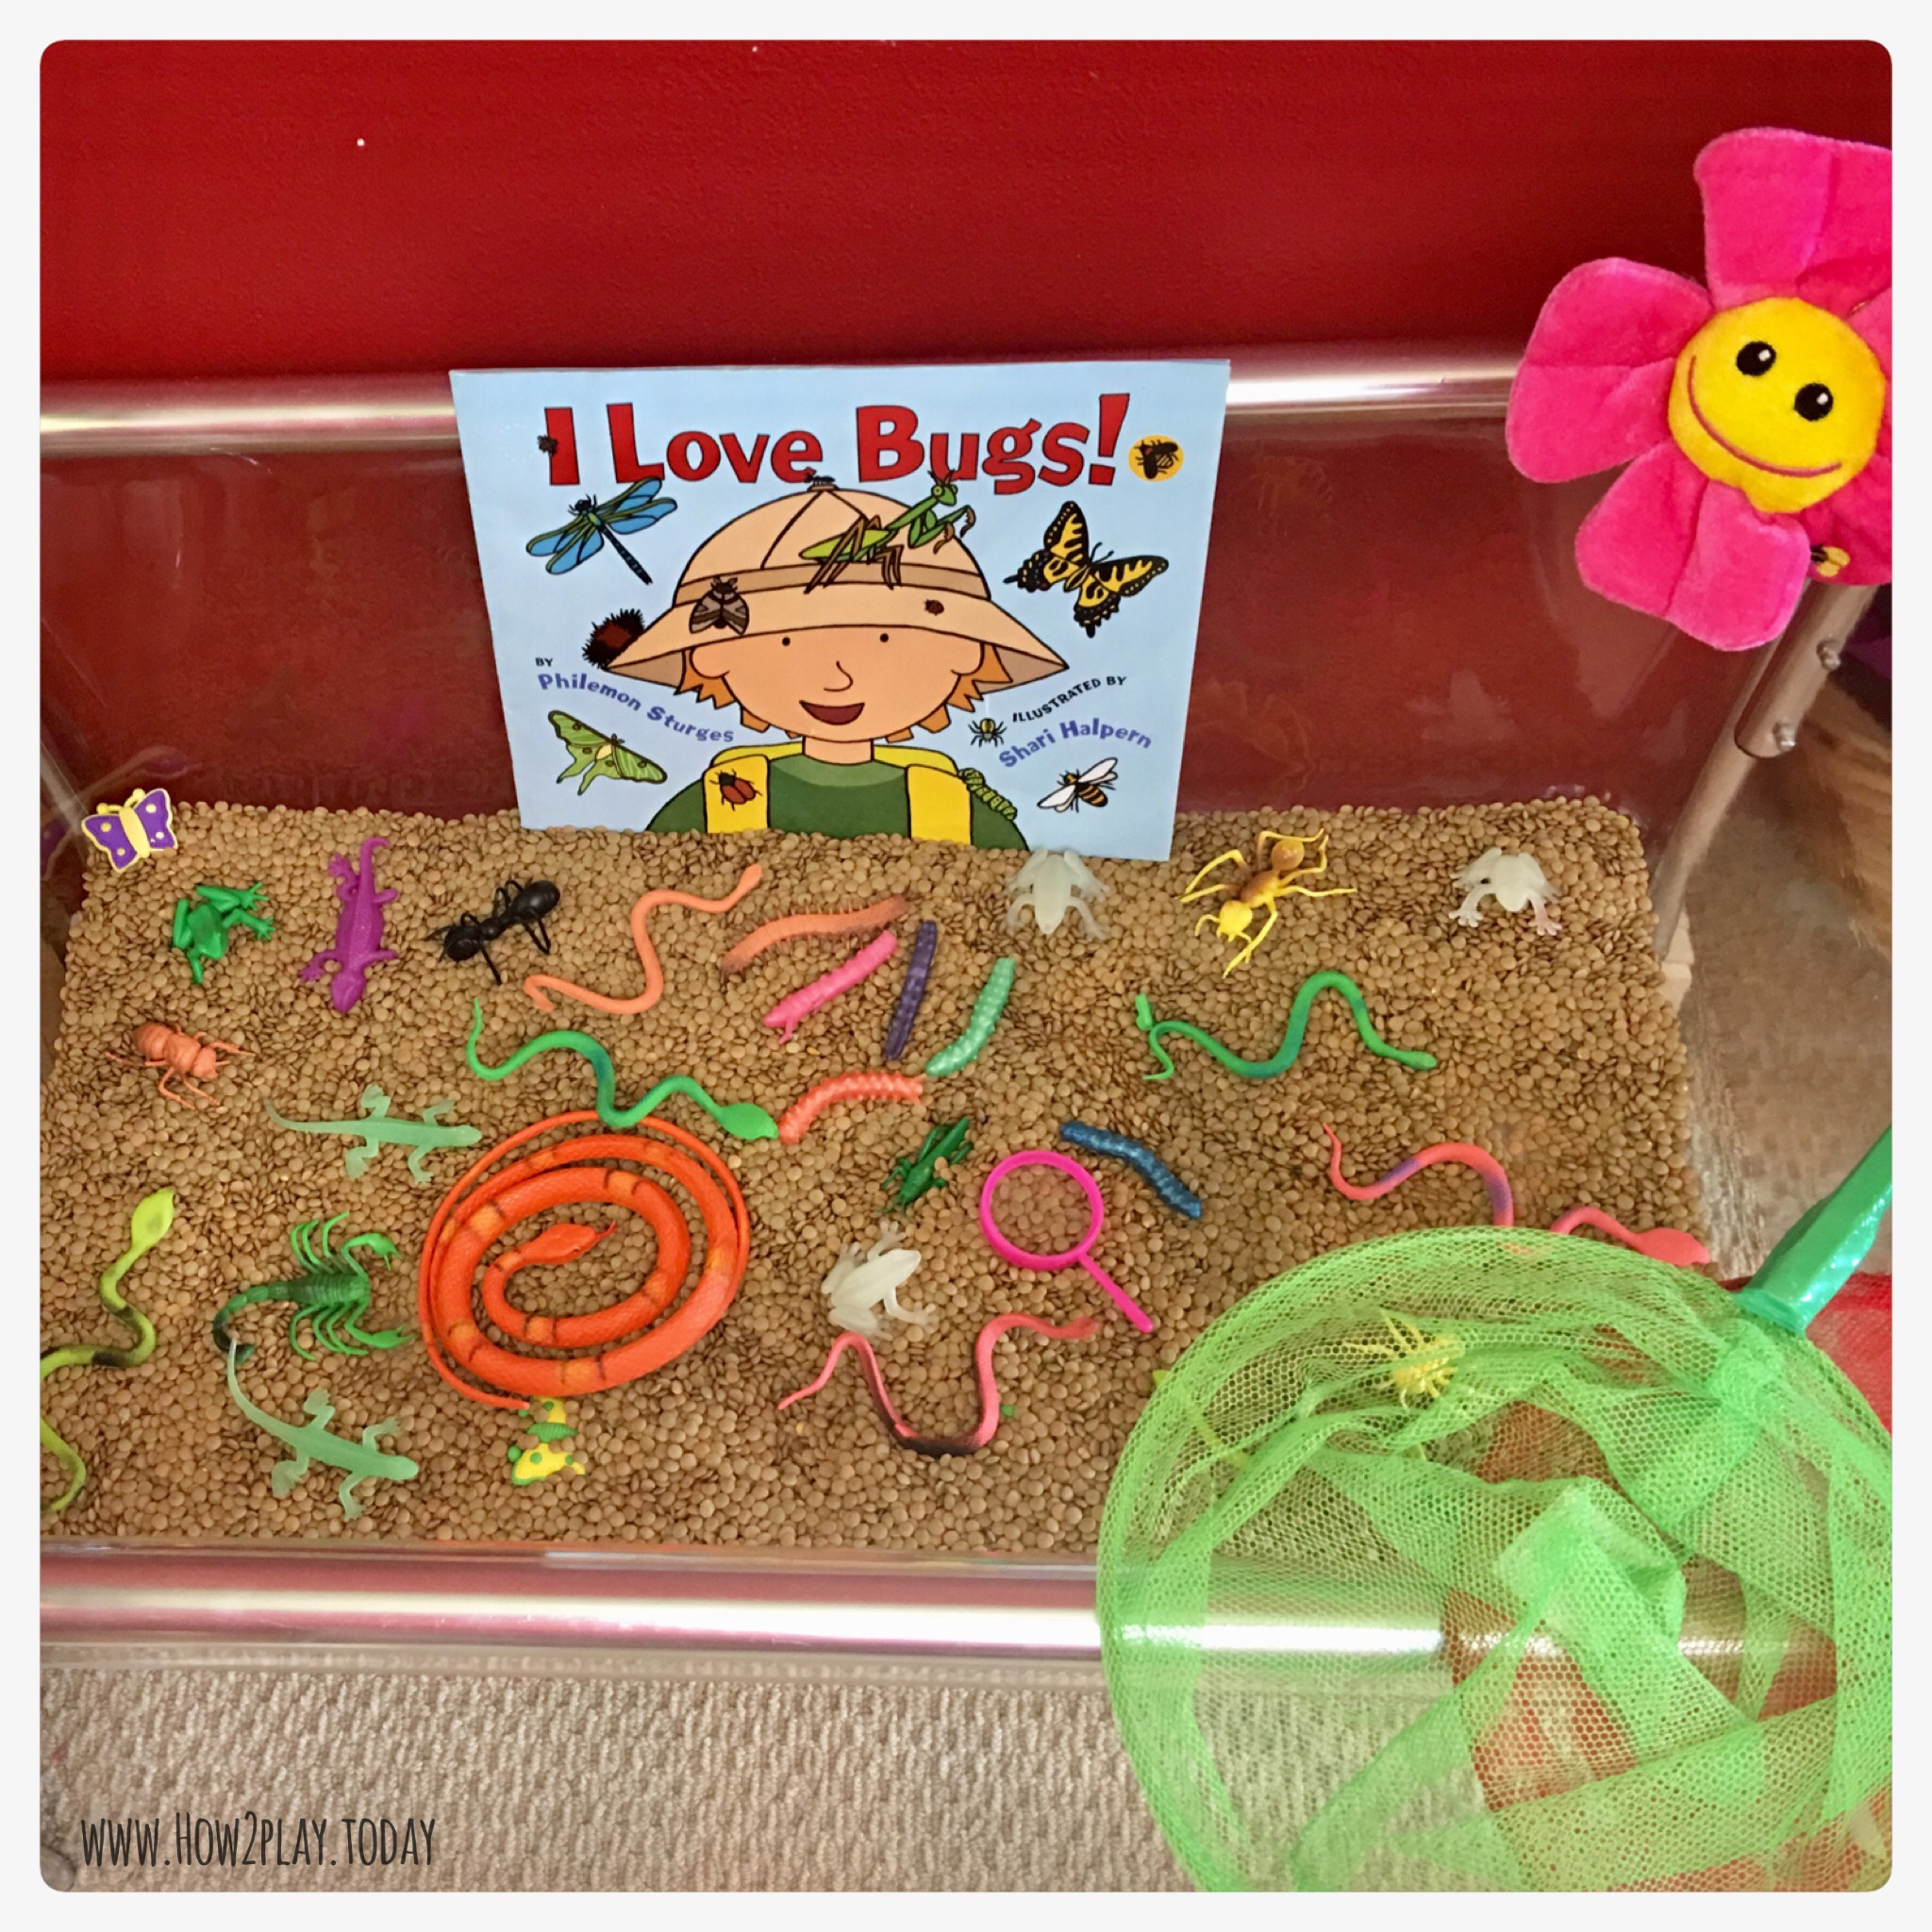 I Love Bugs! Sensory table is all ready for our Bugs & Crawly Things curriculum.